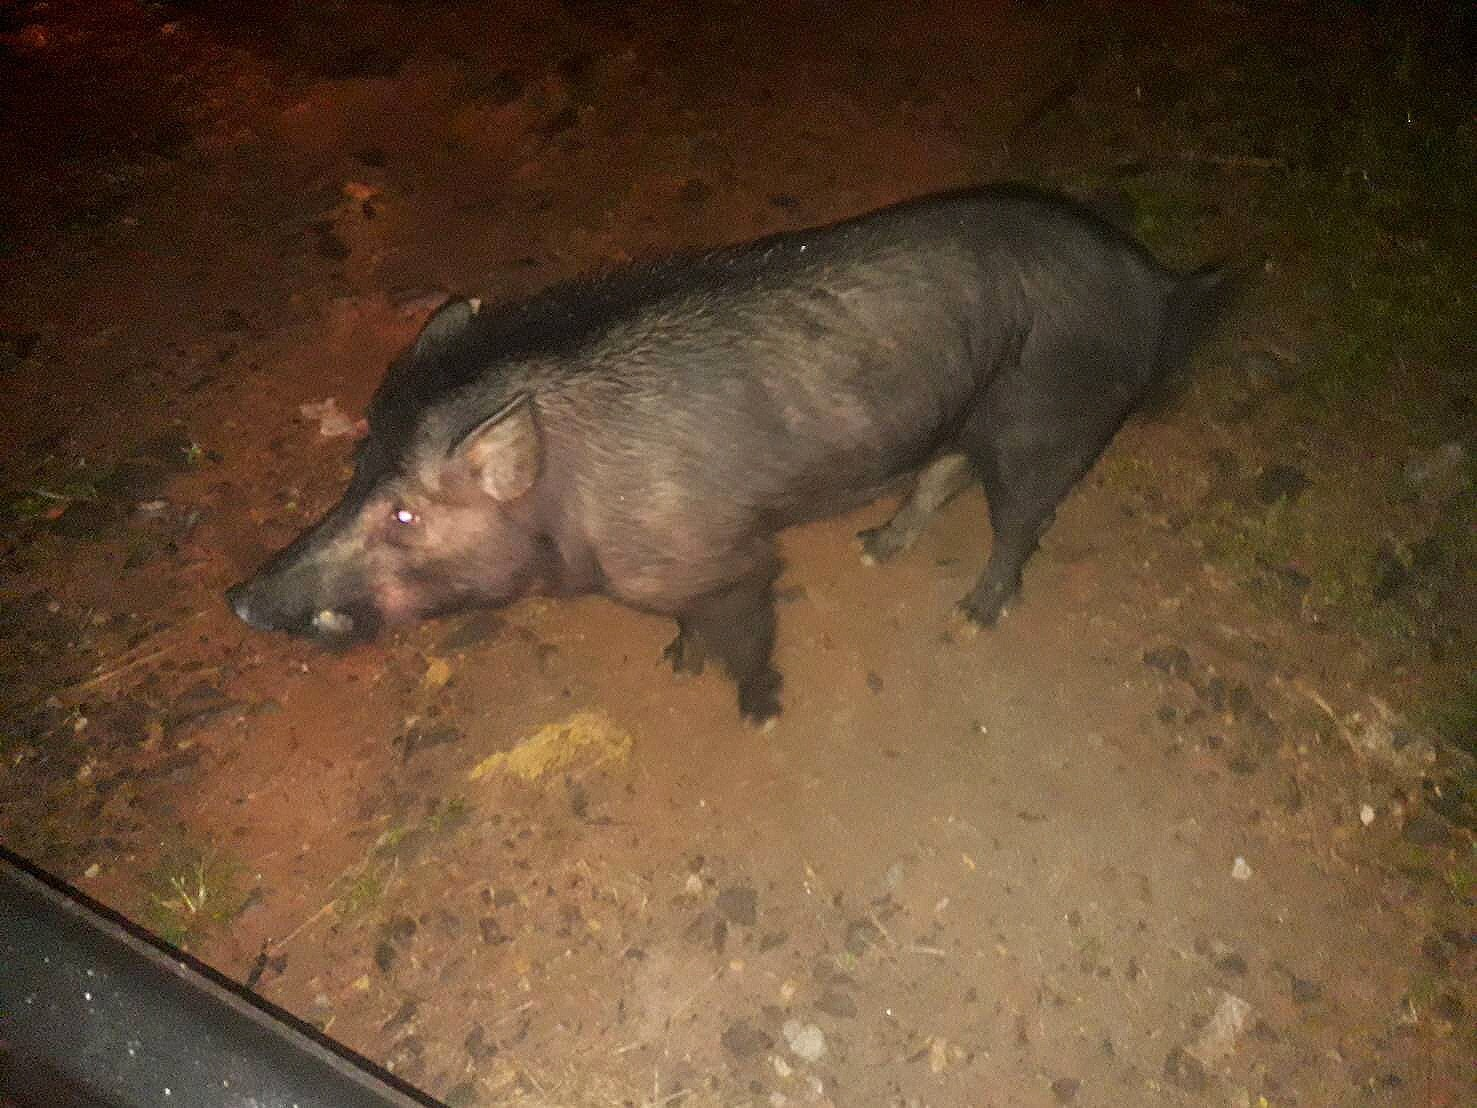 A man killed by a boar in Kathu | The Thaiger